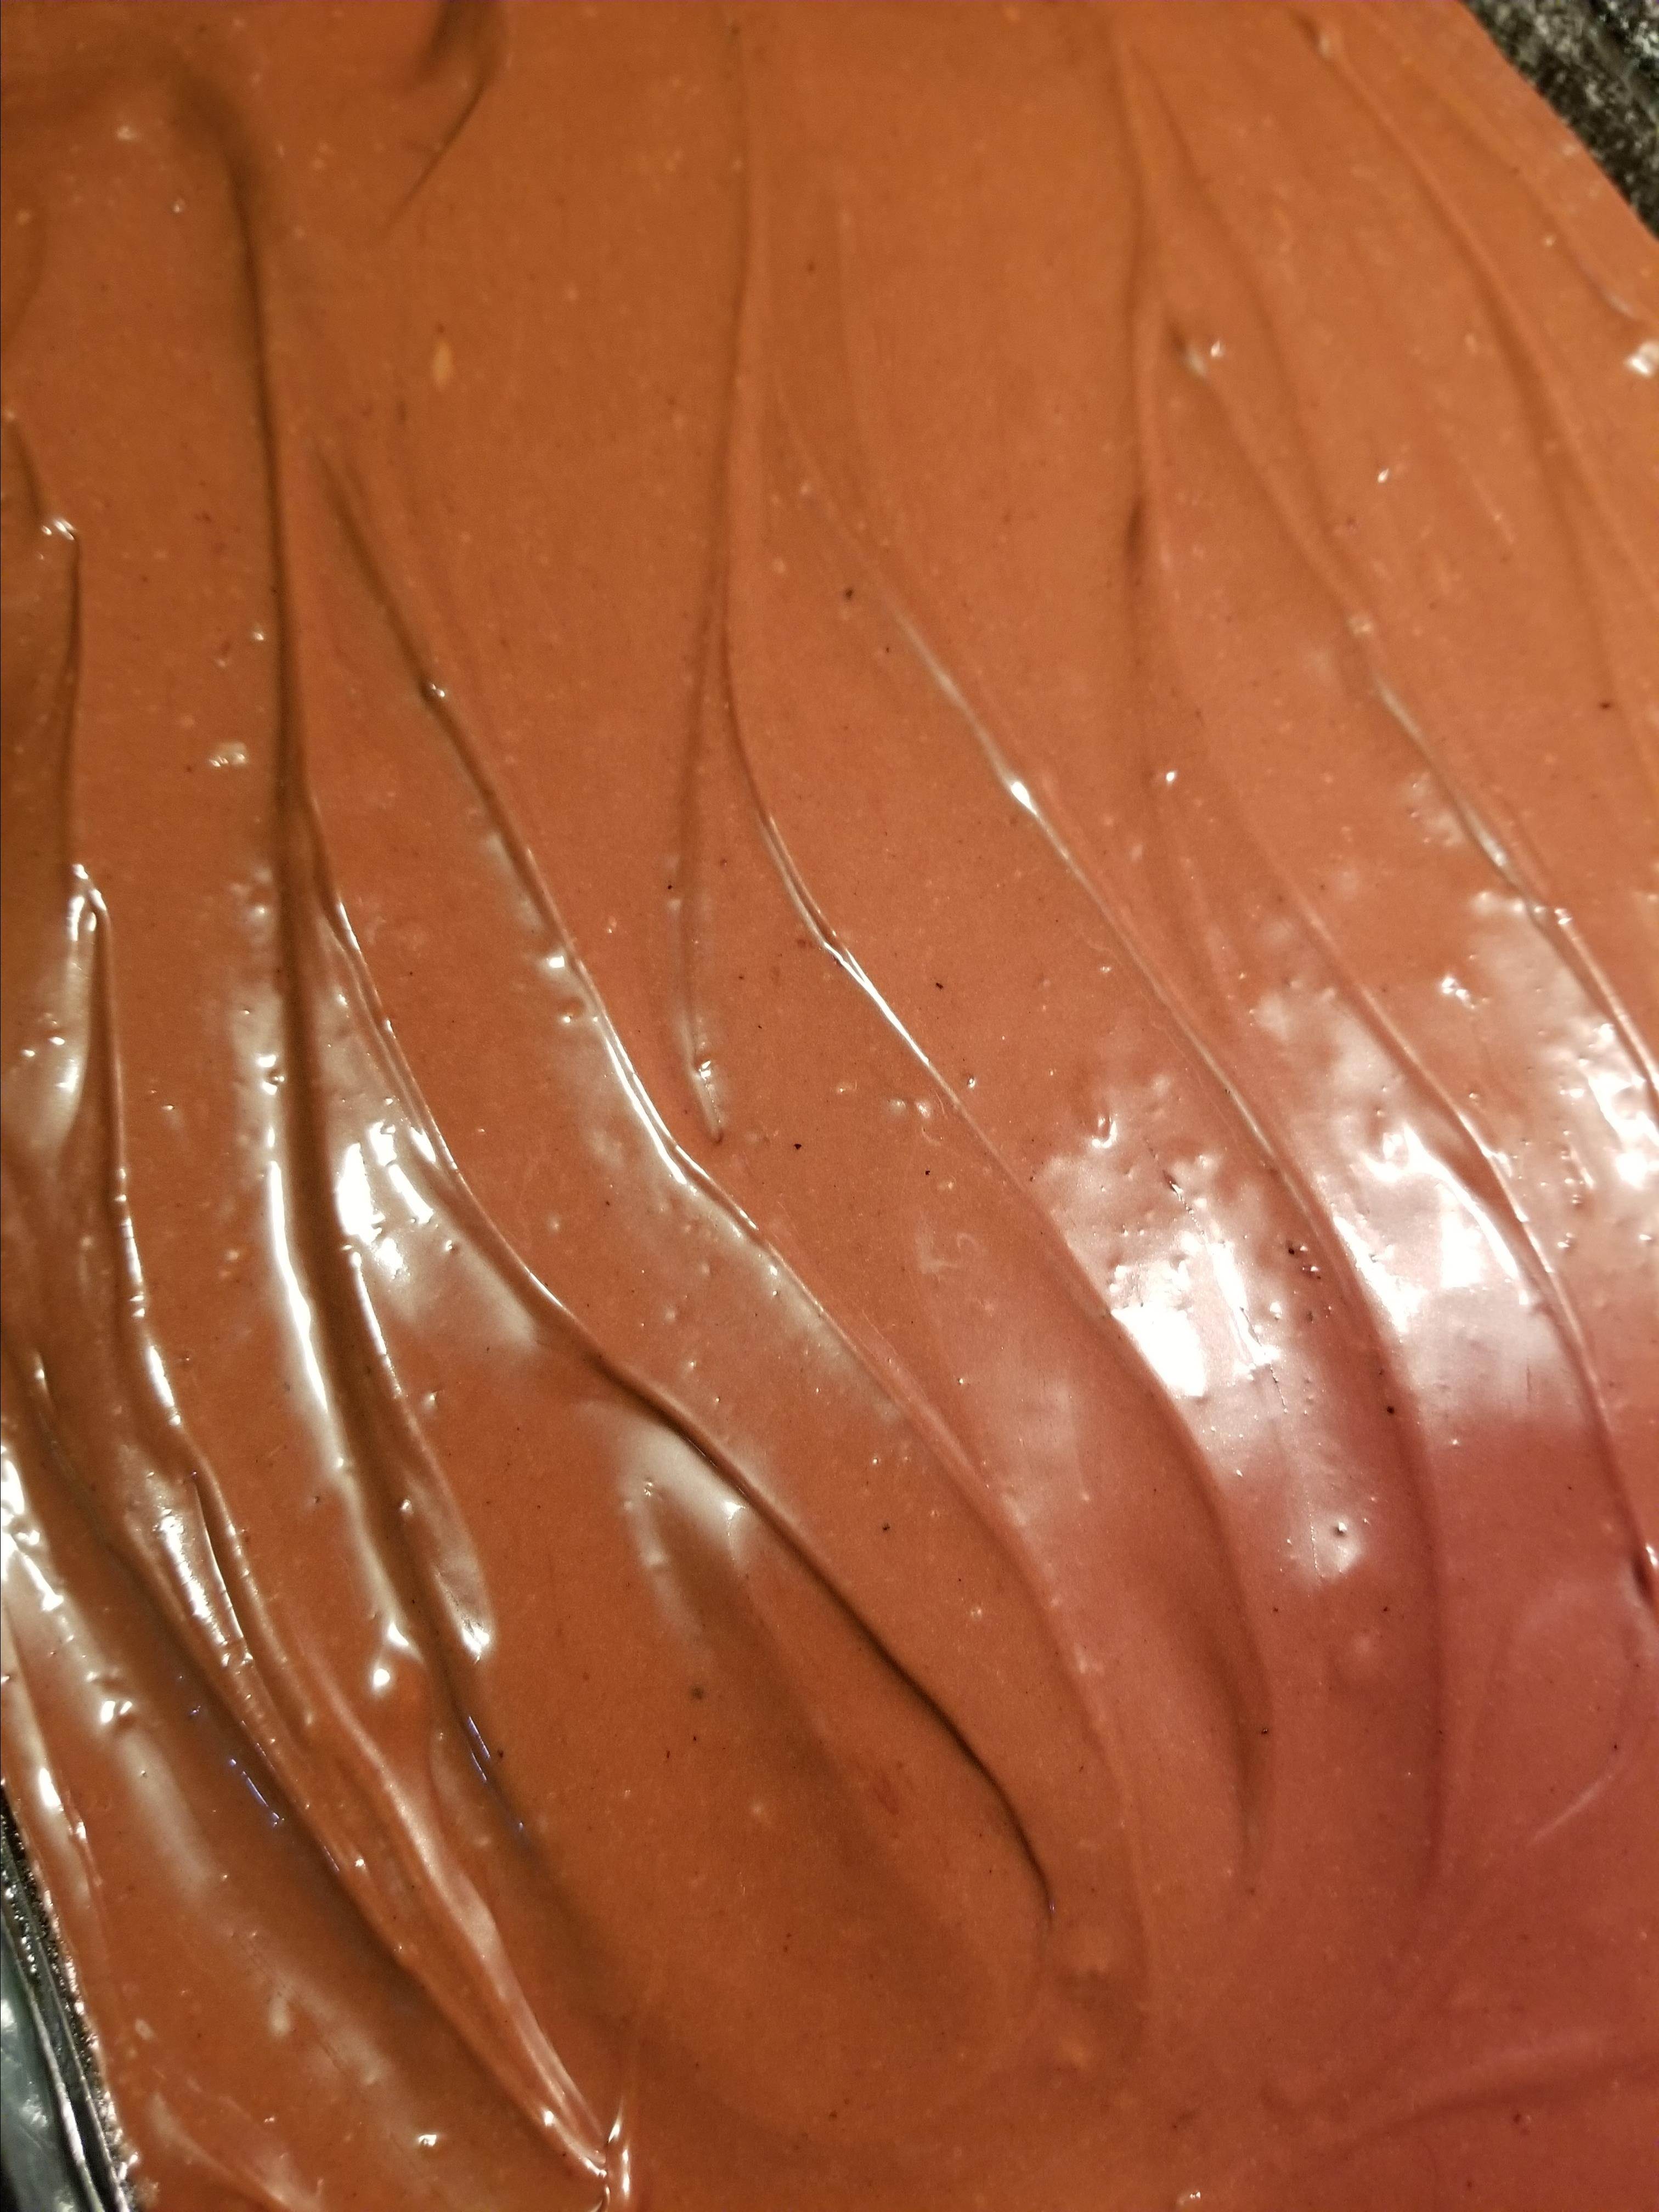 Chocolate Cream Cheese Frosting Harht4God